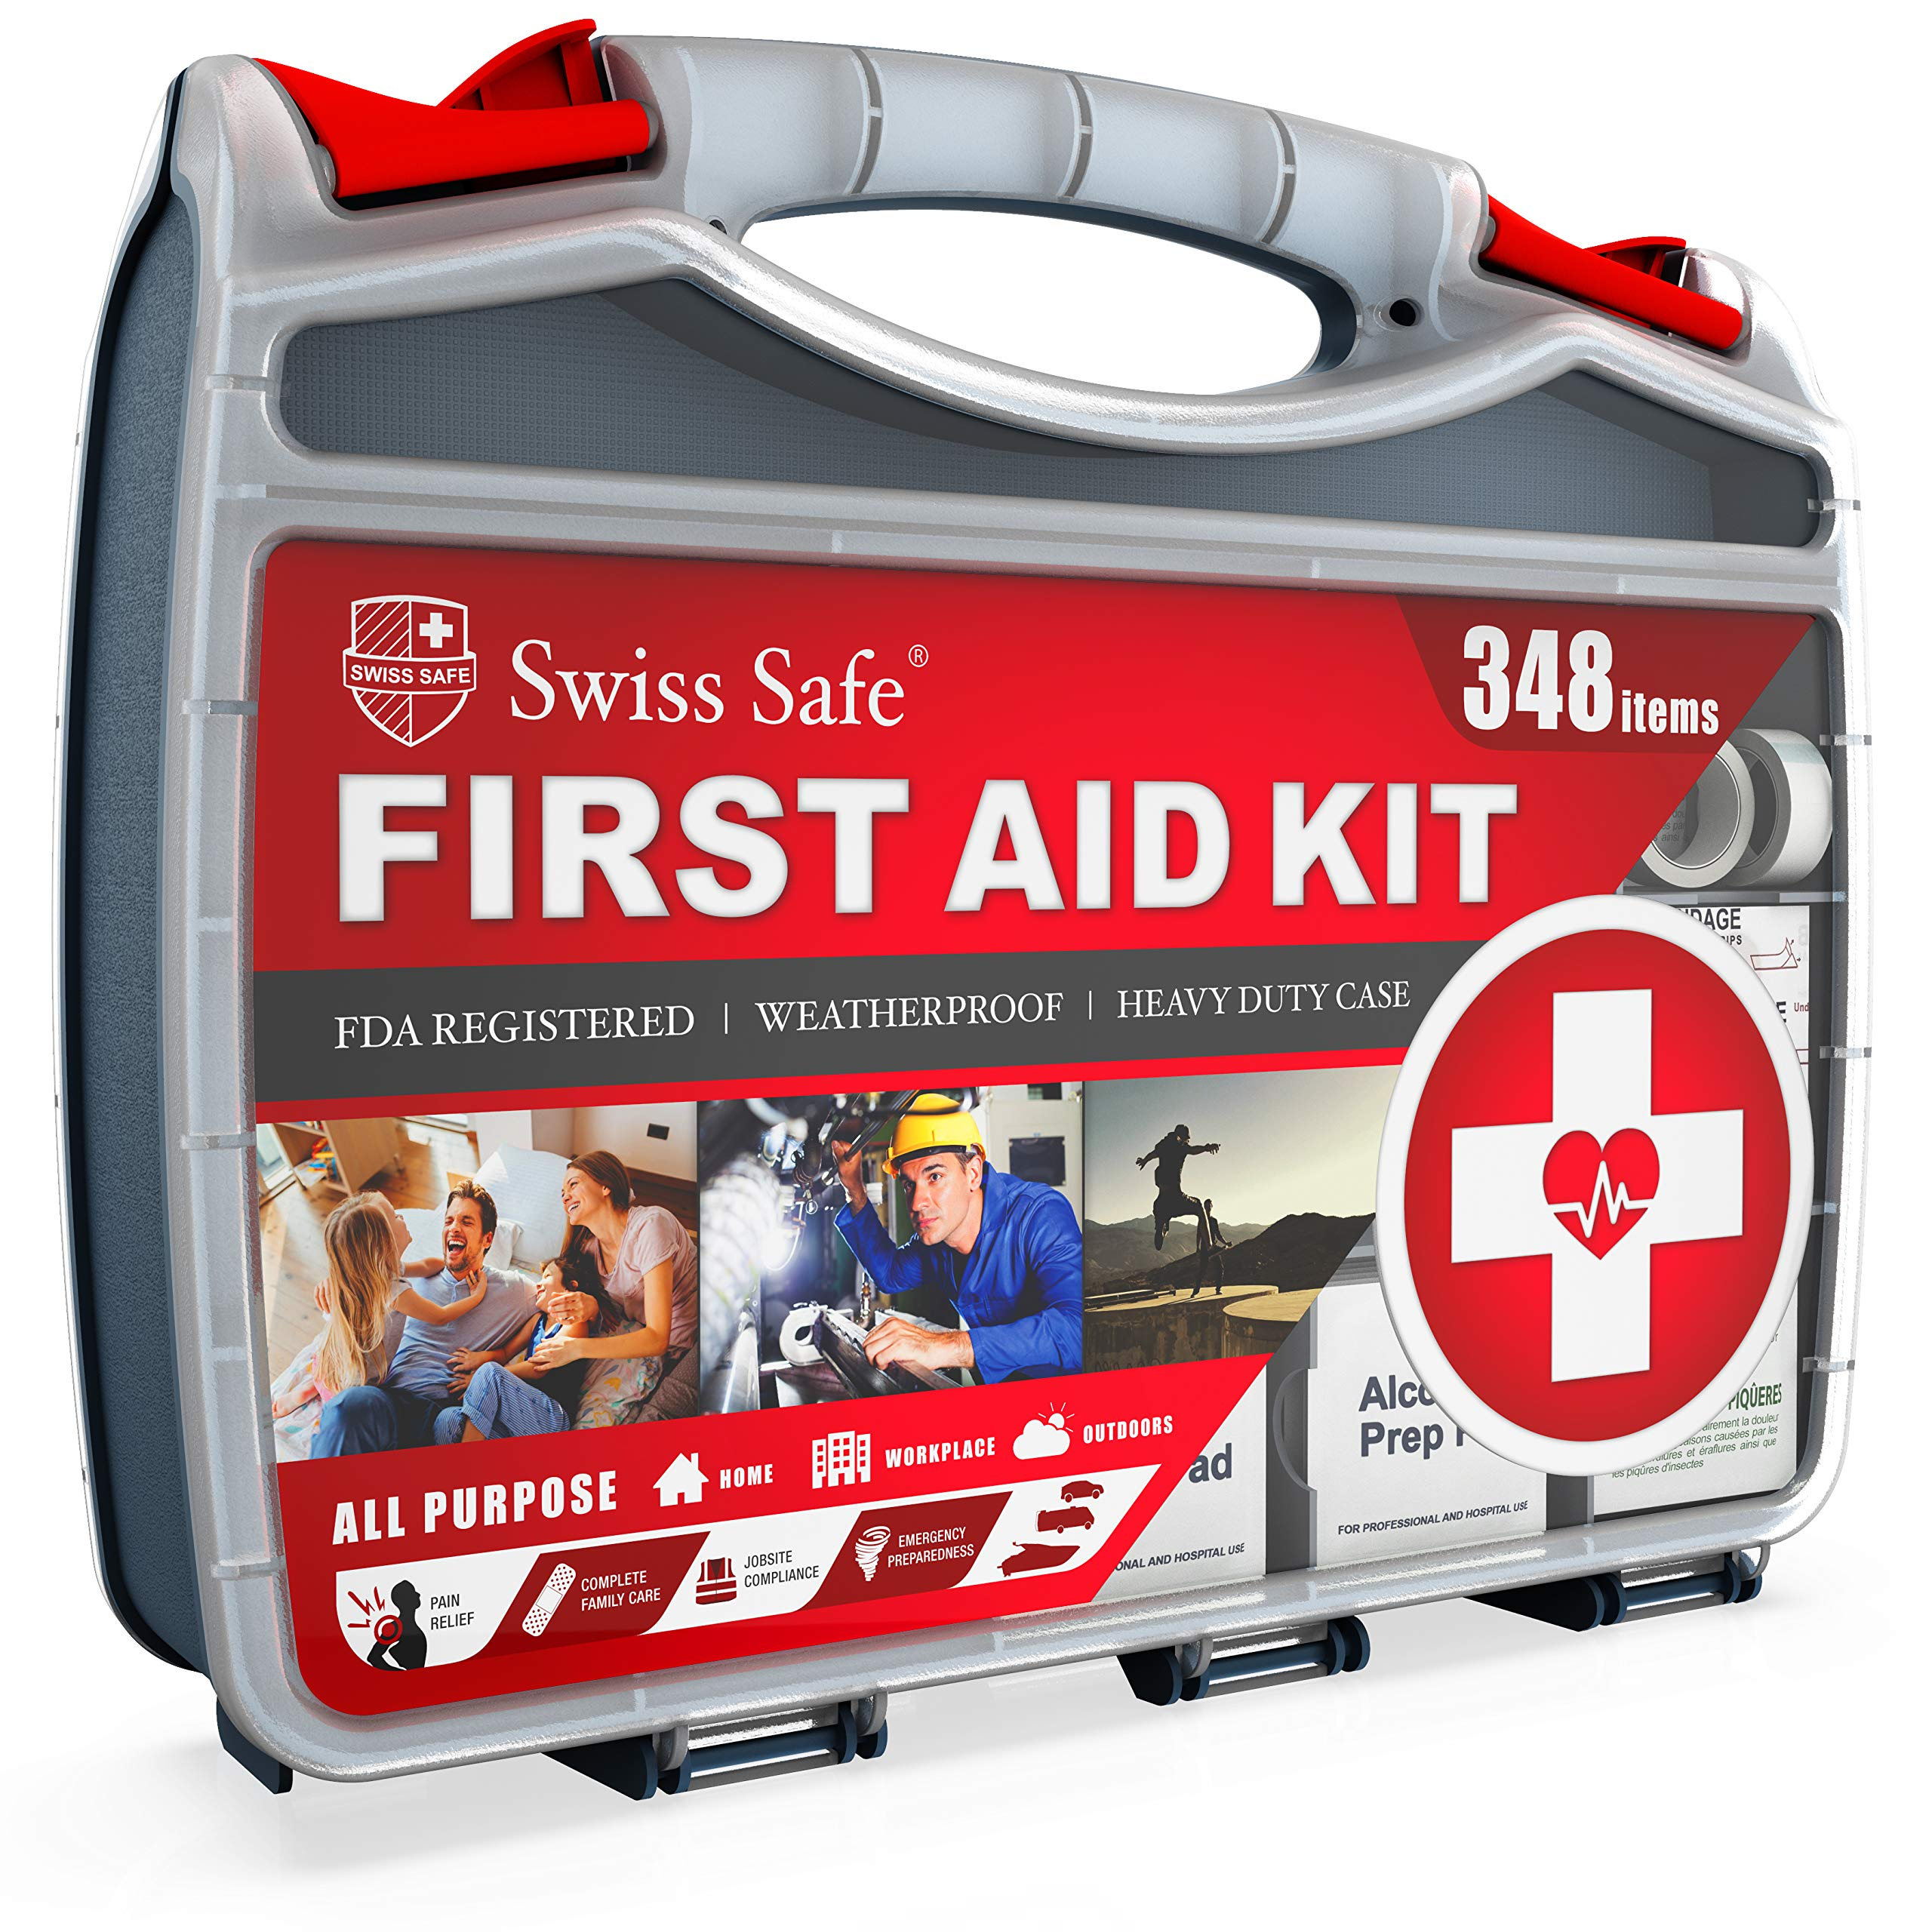 2-in-1 First Aid Kit (348-Piece) 'Double-Sided Hardcase' + BONUS 32-Piece Mini Kit: Perfect for Home & Workplace Safety [50 Person Kit] by Swiss Safe